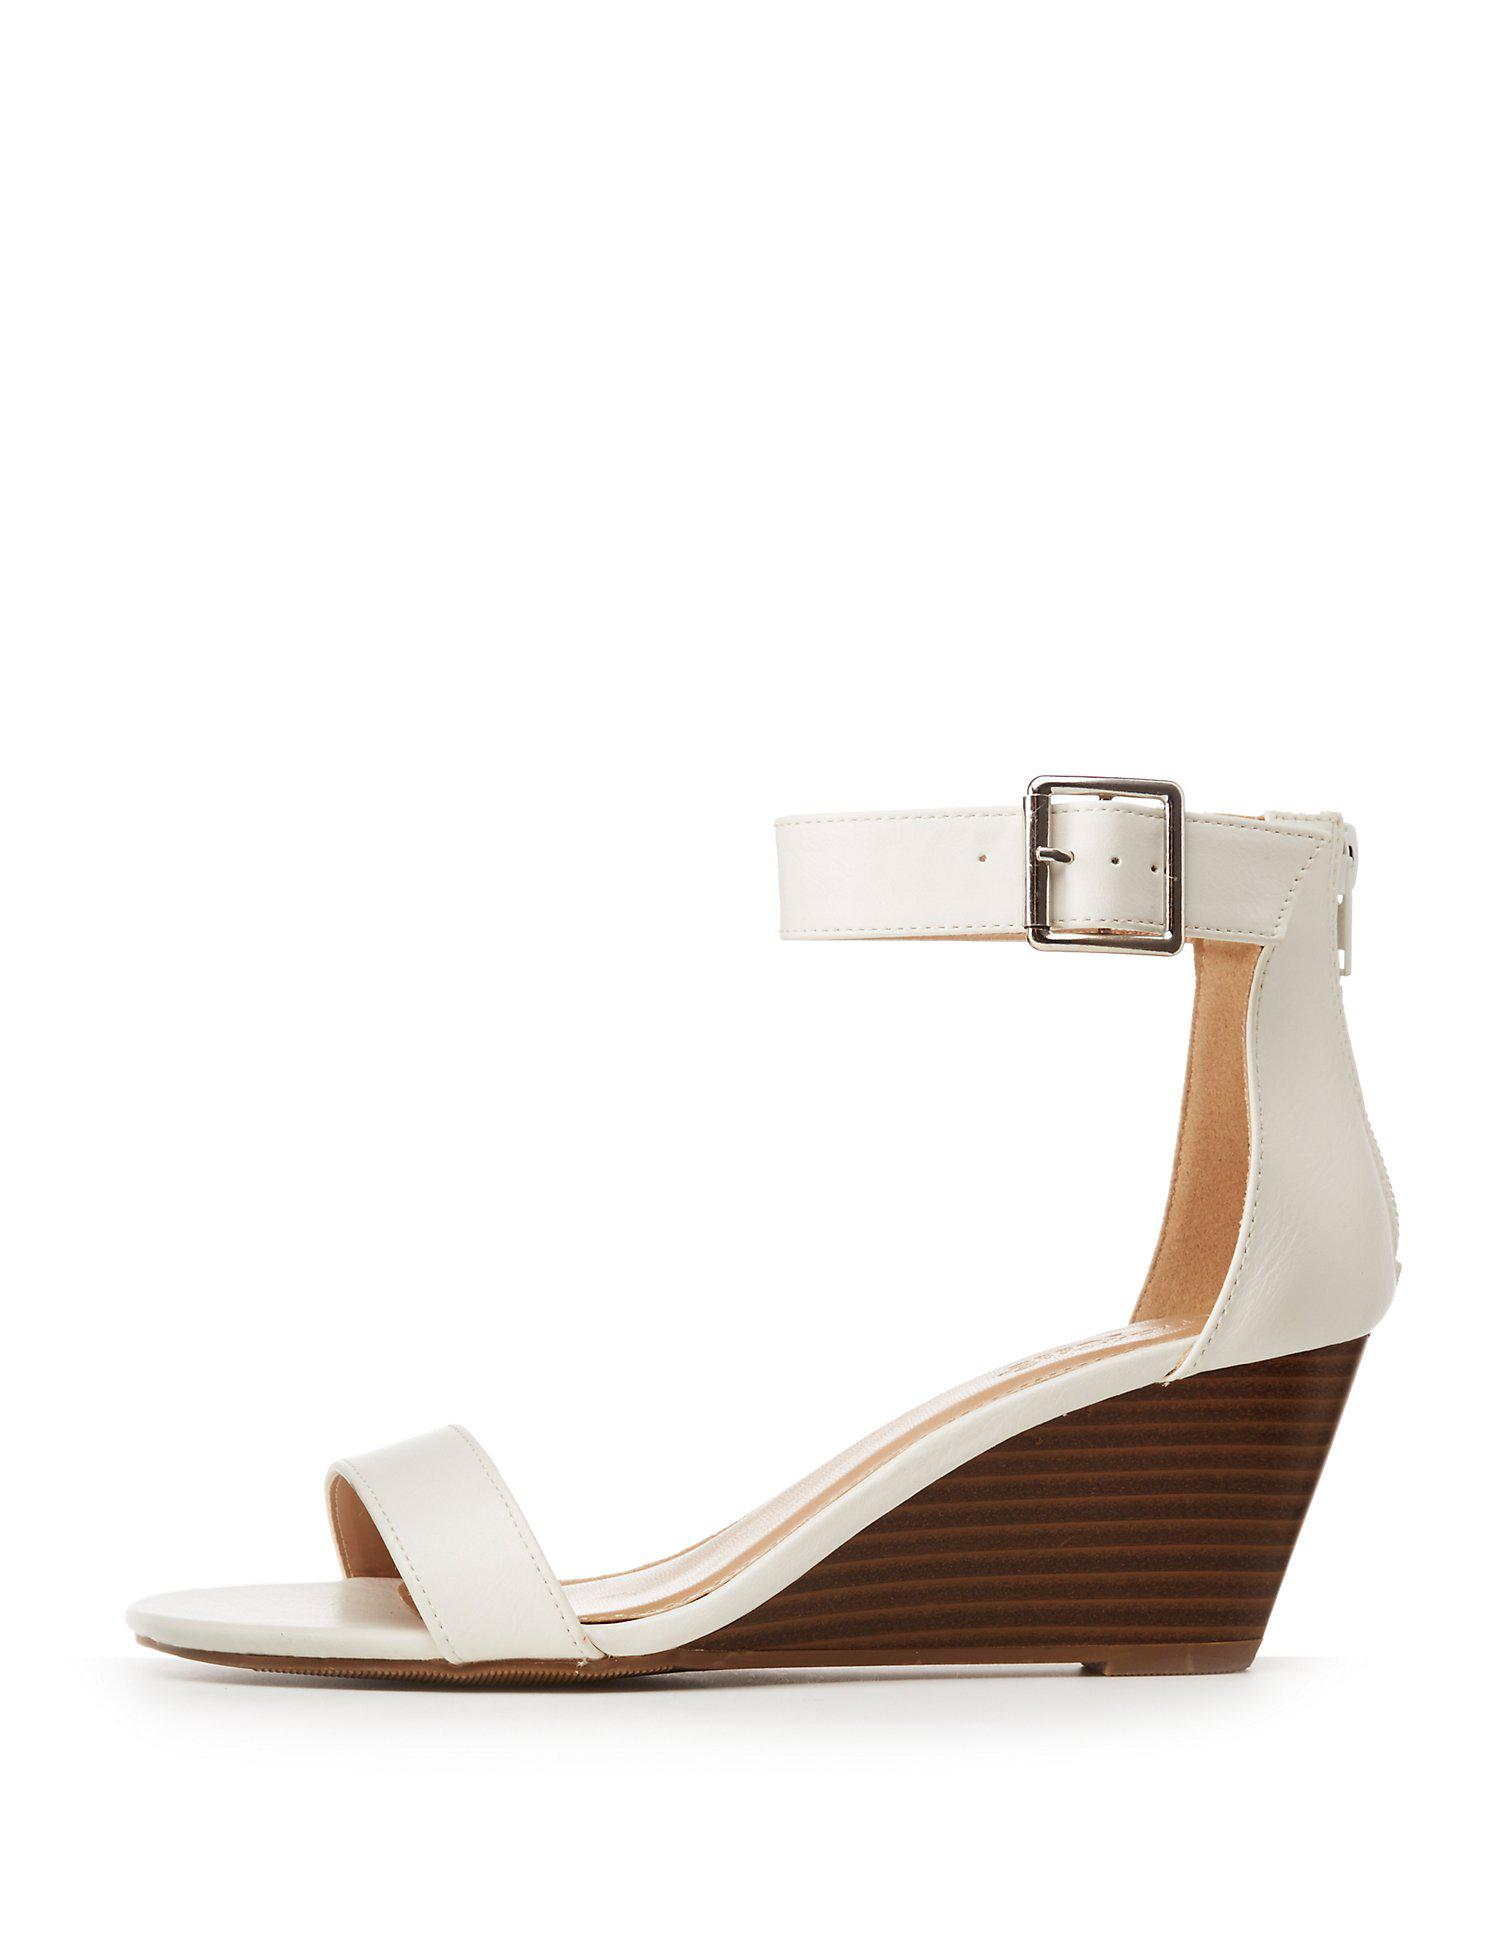 85b6f6a1a7d Lyst - Charlotte Russe Two-piece Wedge Sandals in White - Save 34%